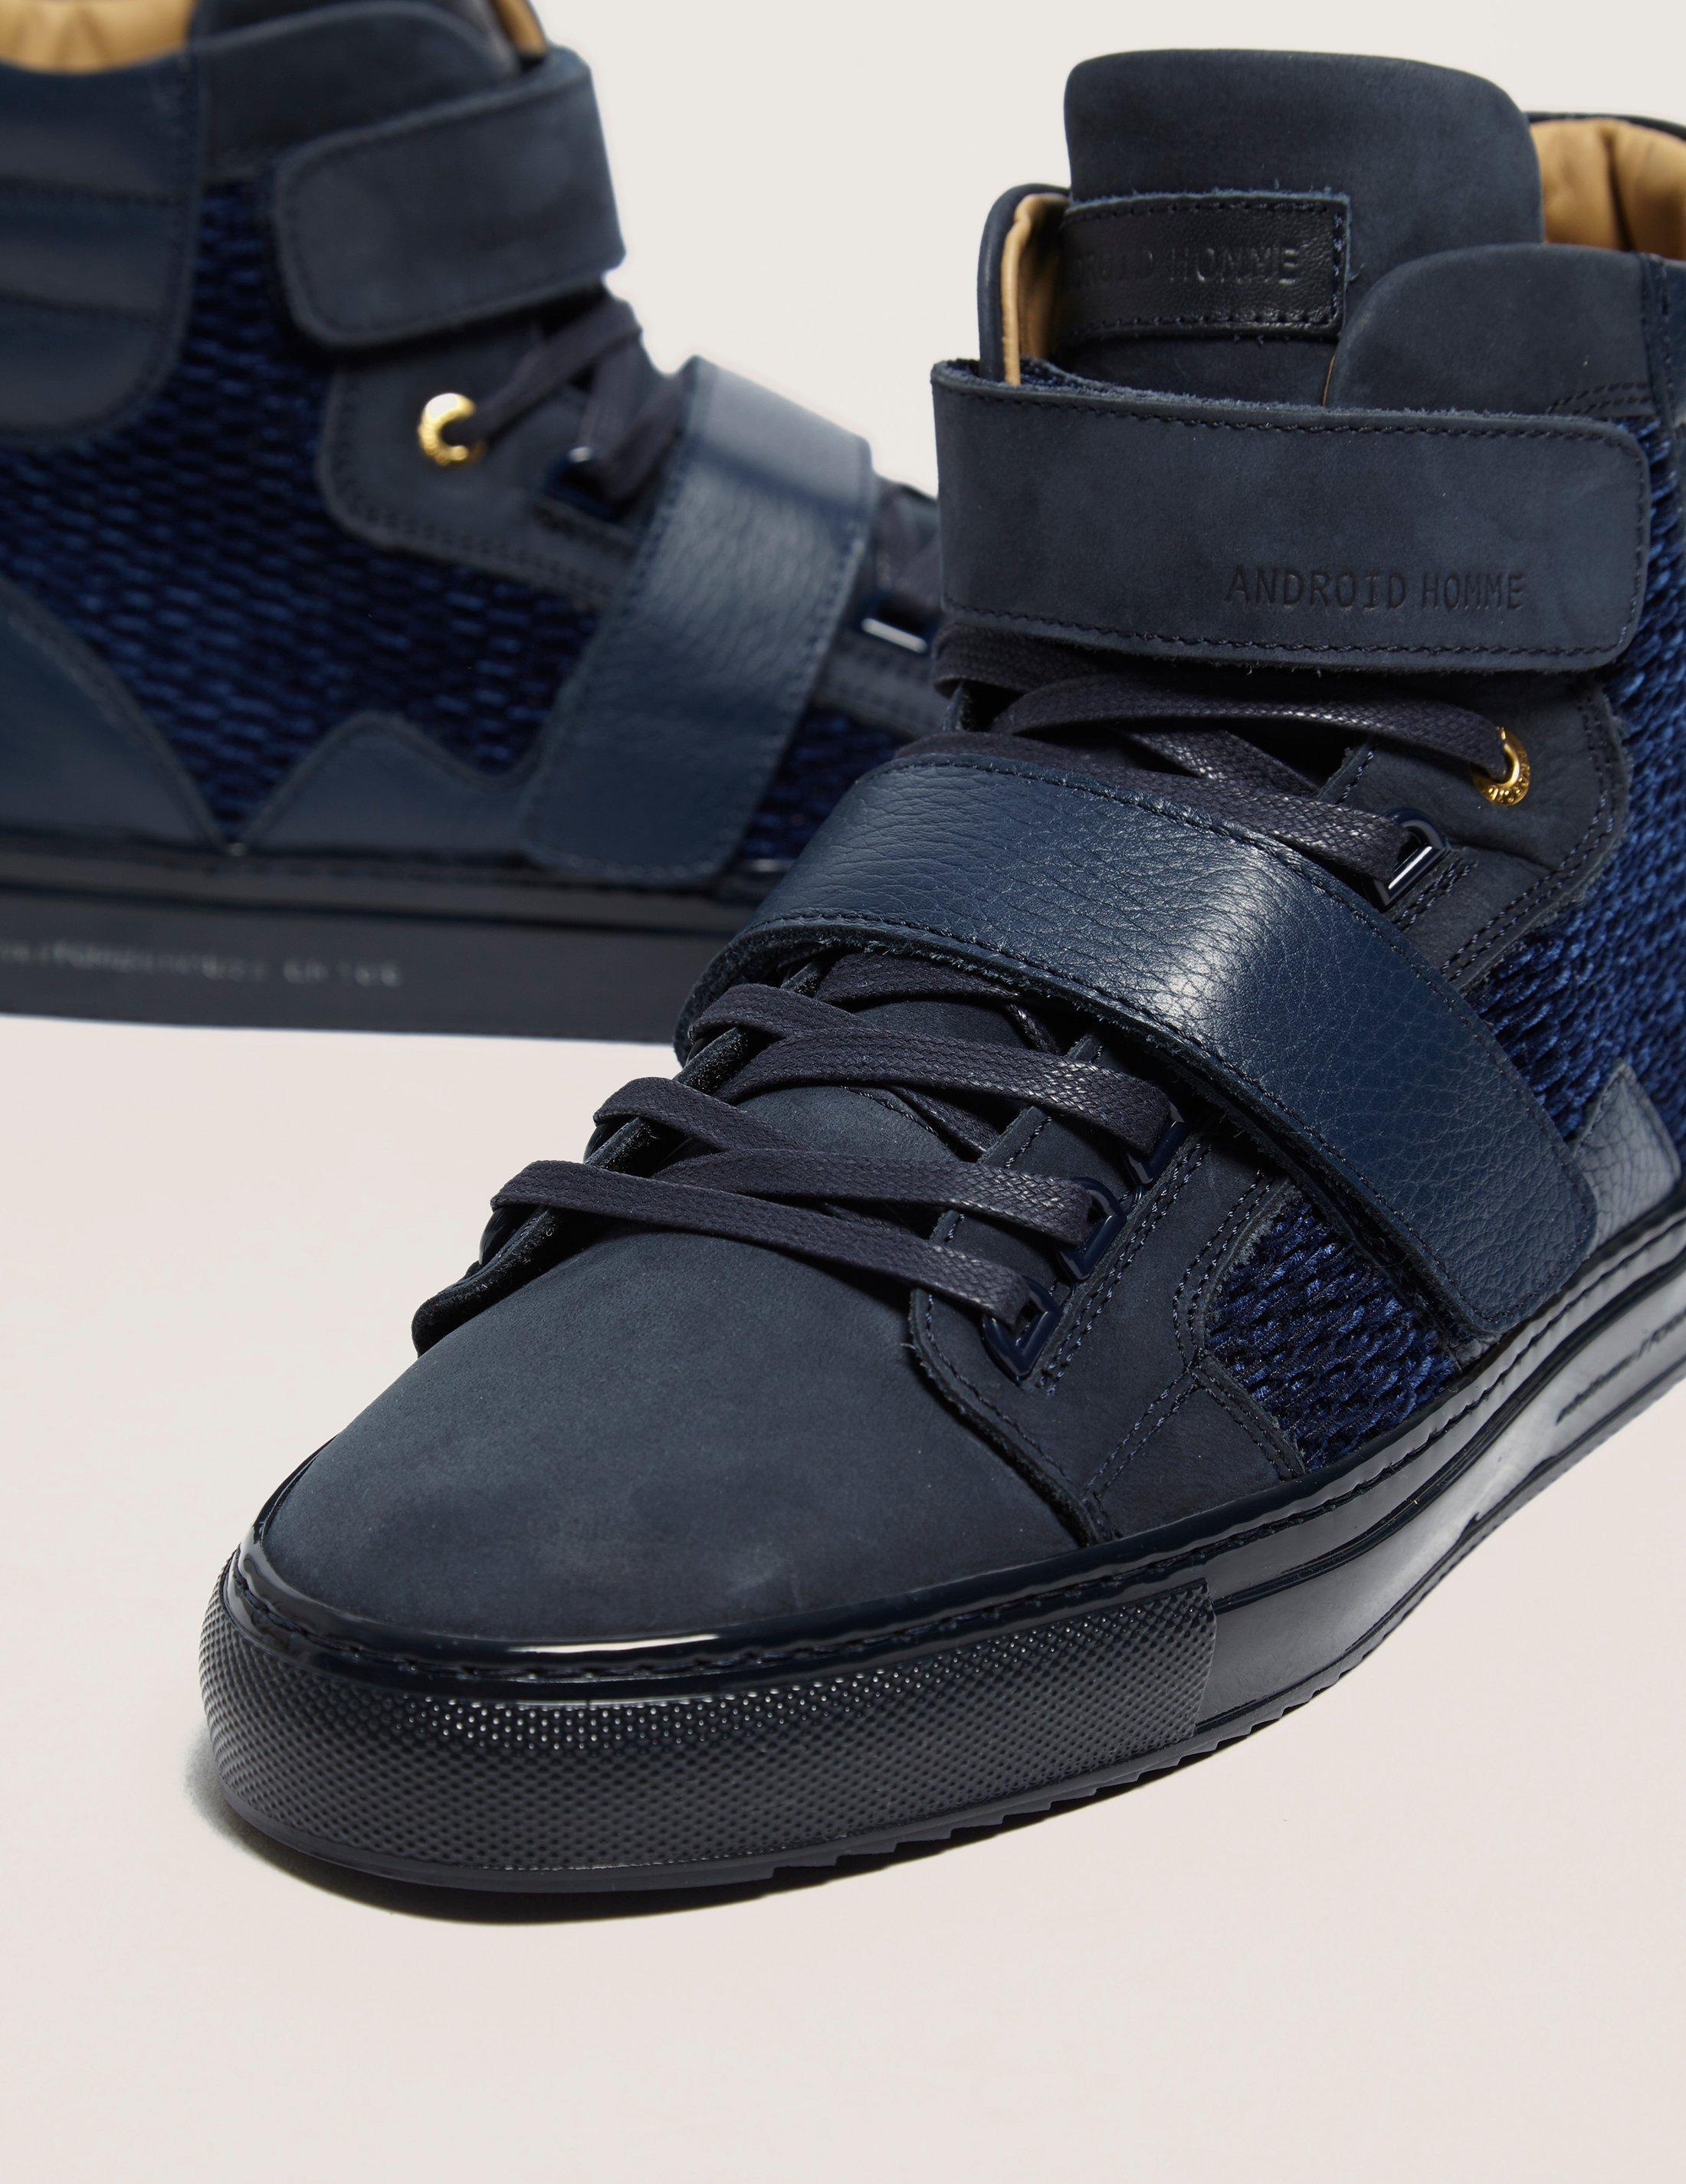 Android Homme Leather Propulsion Hi In Navy Blue For Men Lyst